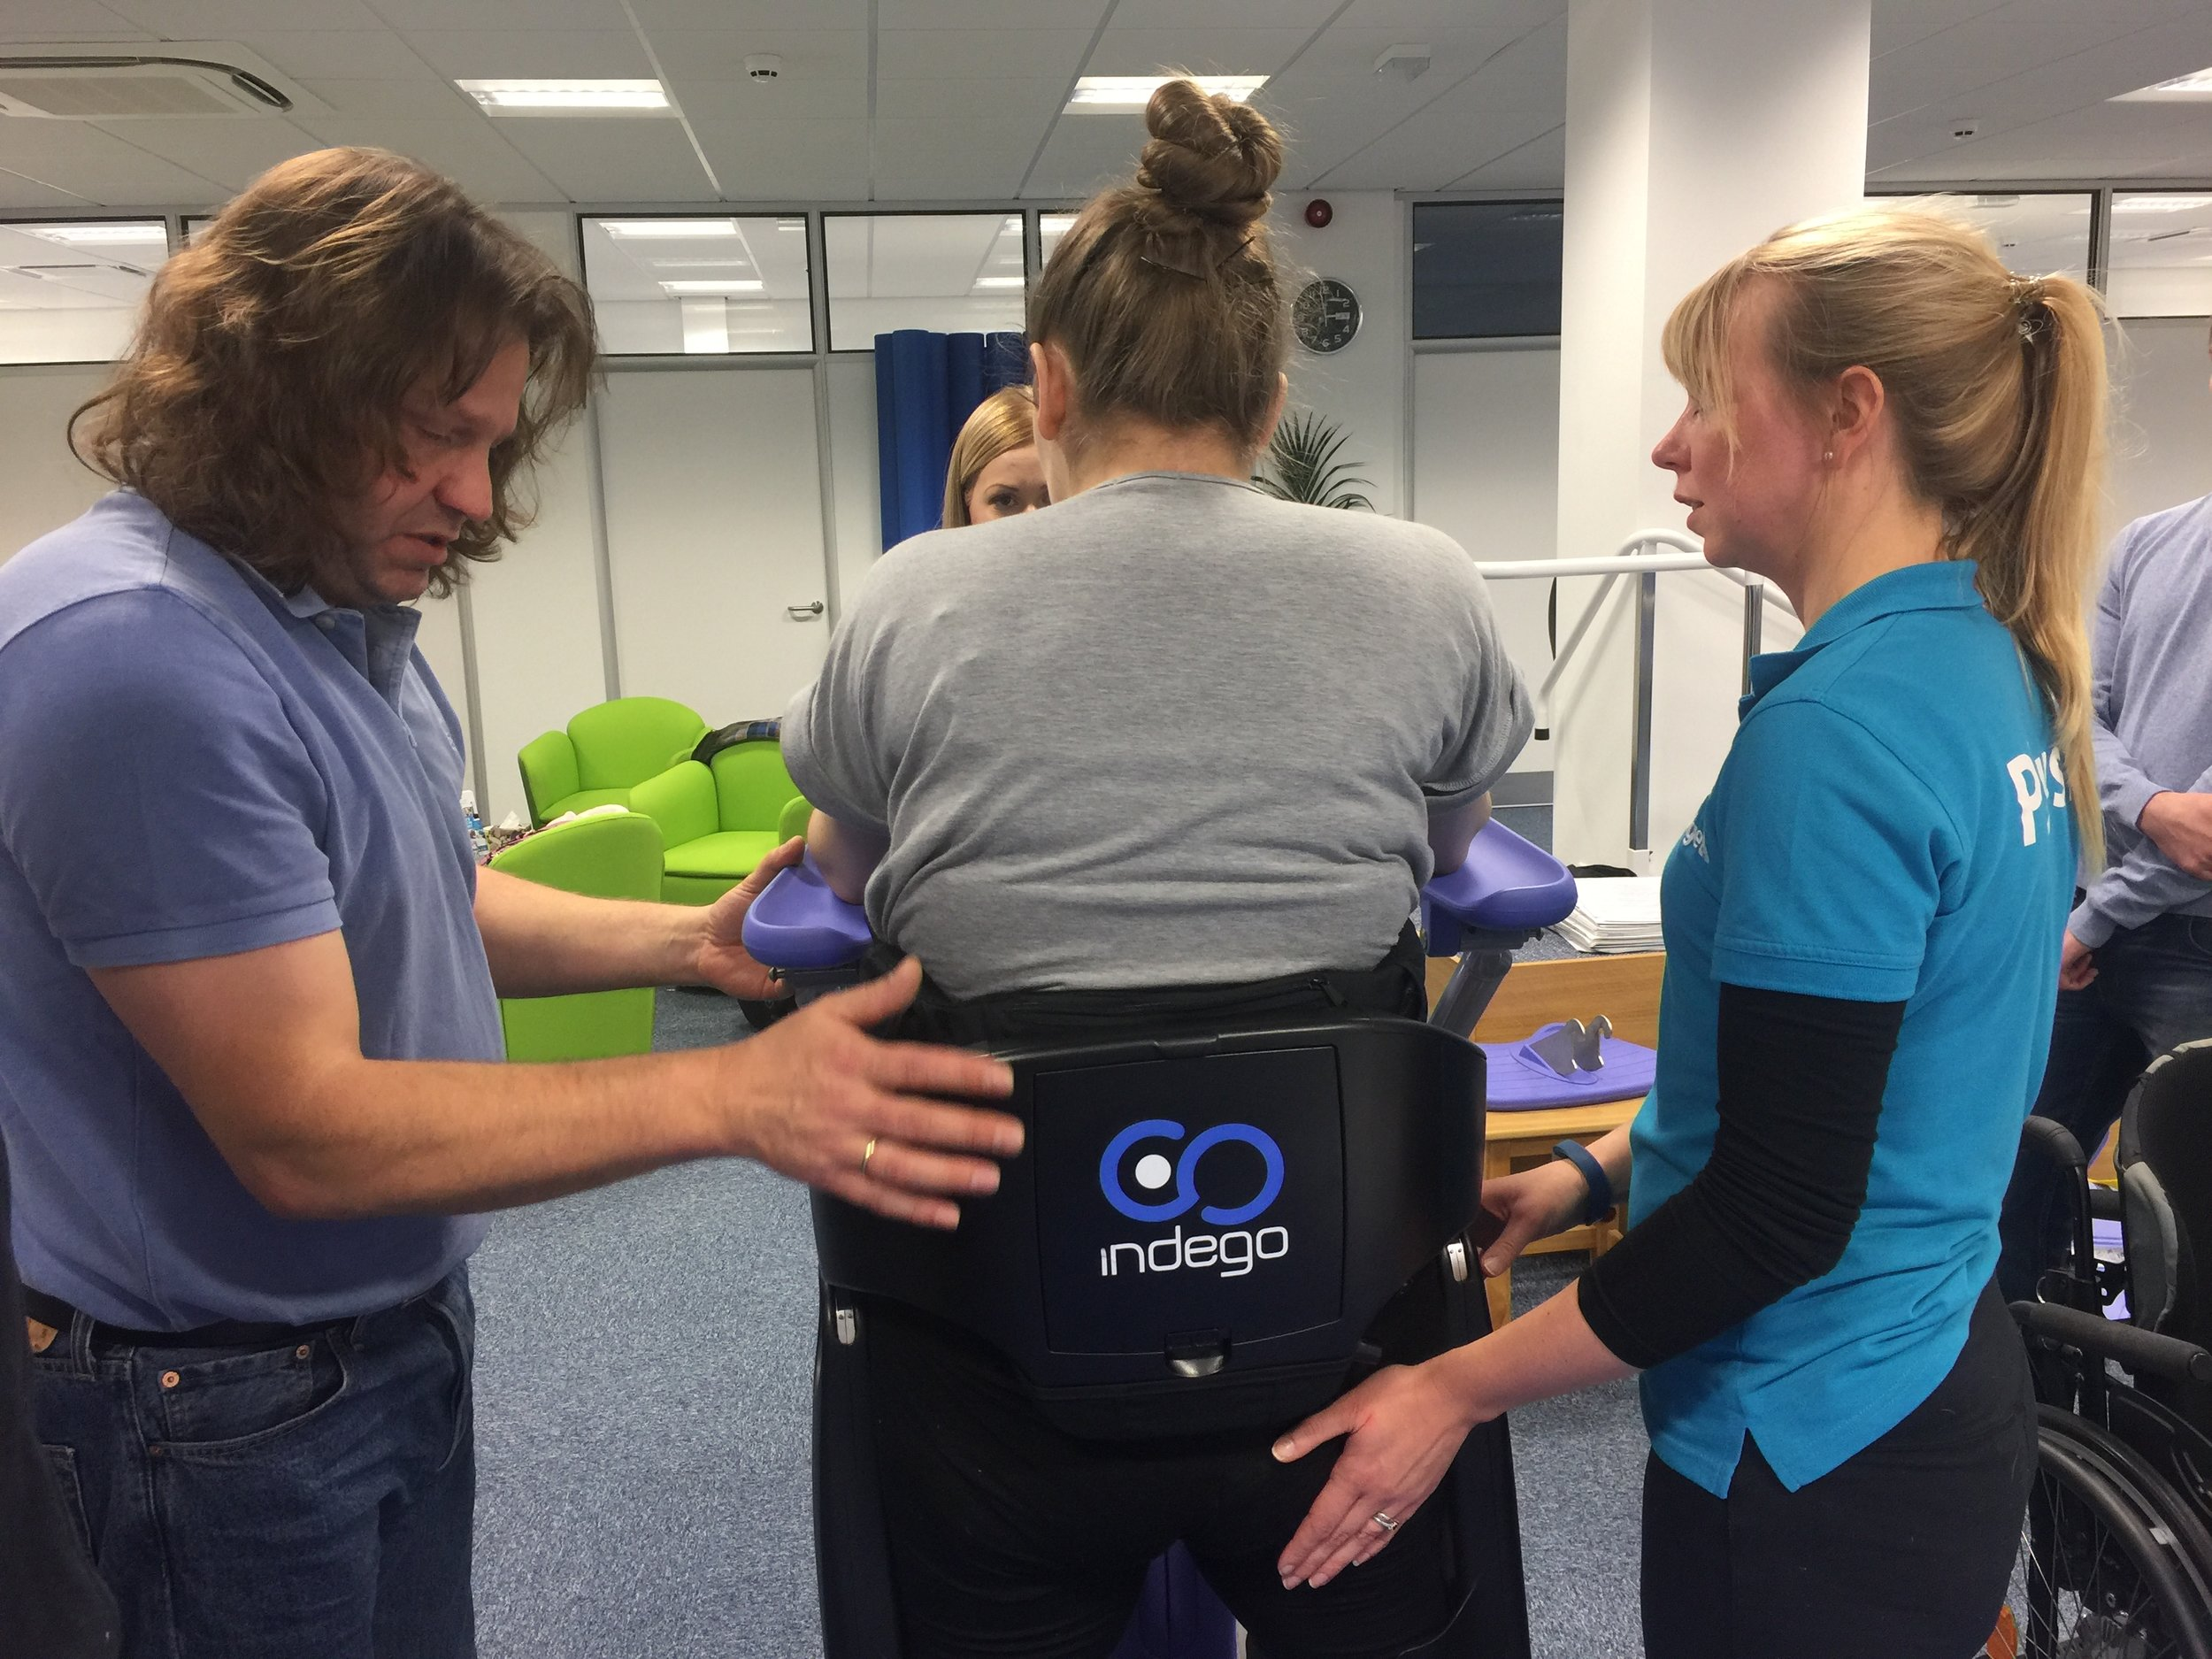 The Indego Therapy Kit supports rehab in way not possible in the past